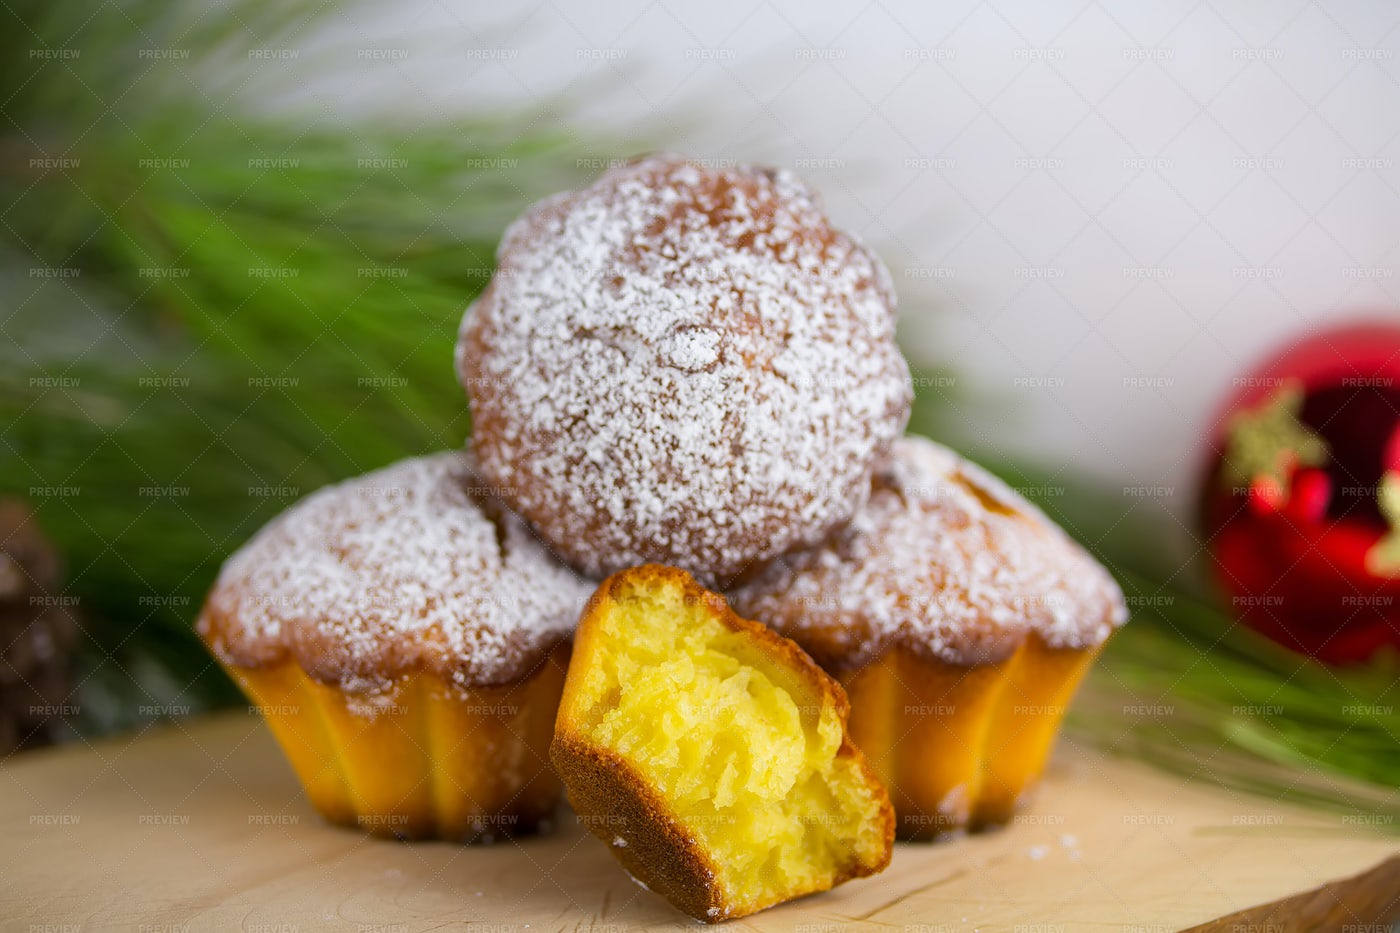 Christmas Muffins With Pine Branches: Stock Photos